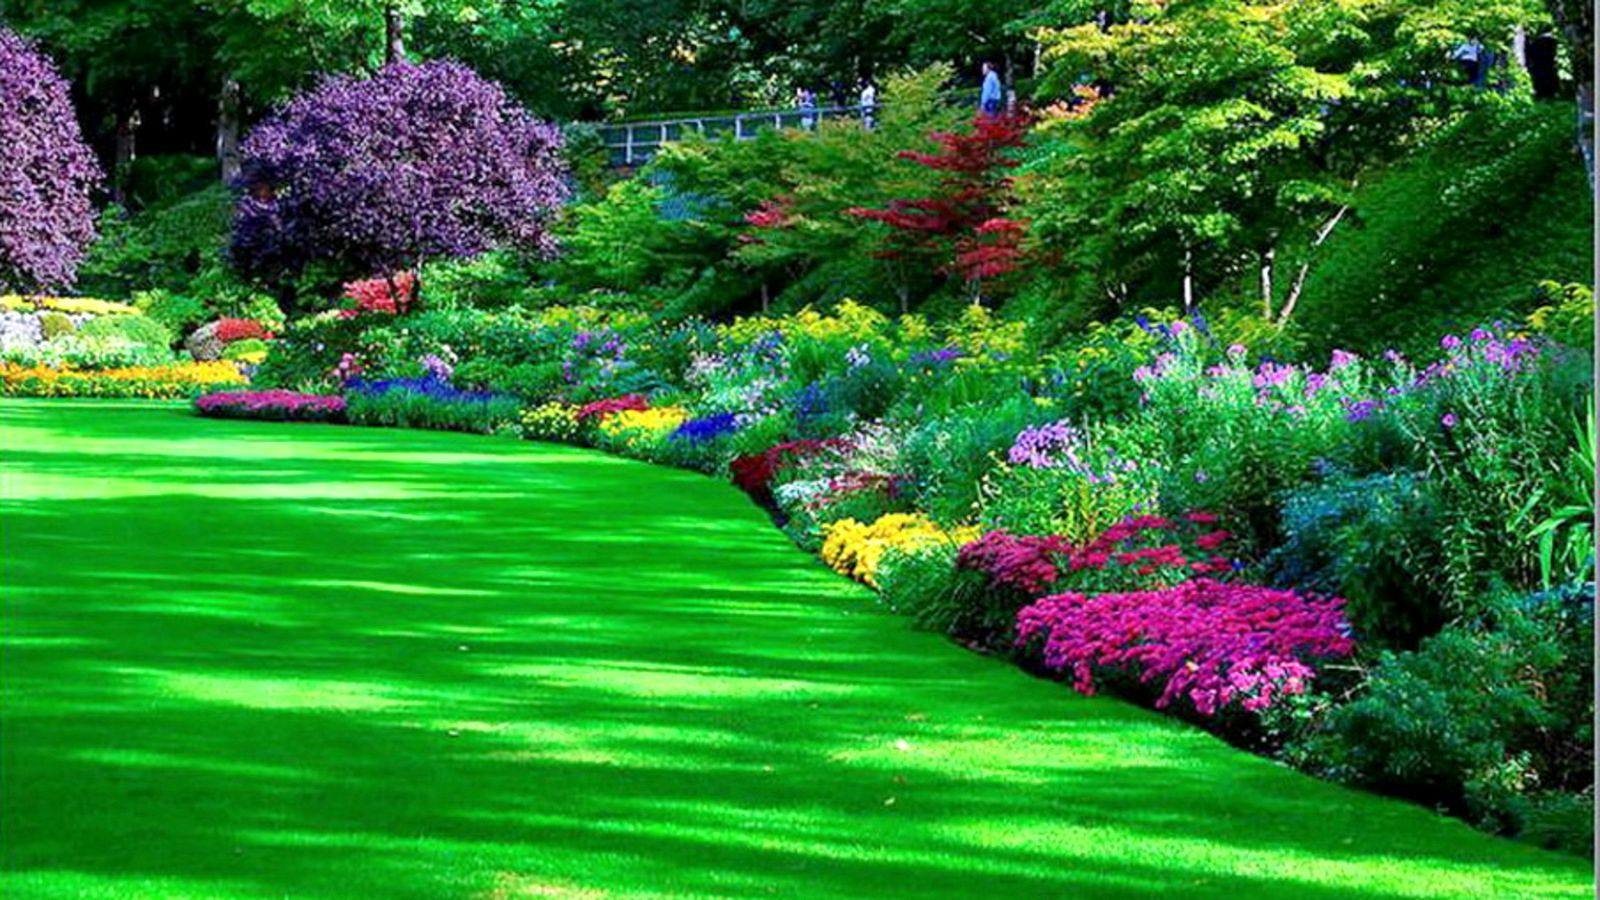 Garden Images Hd Free Download Garden Park HD Pretty ...